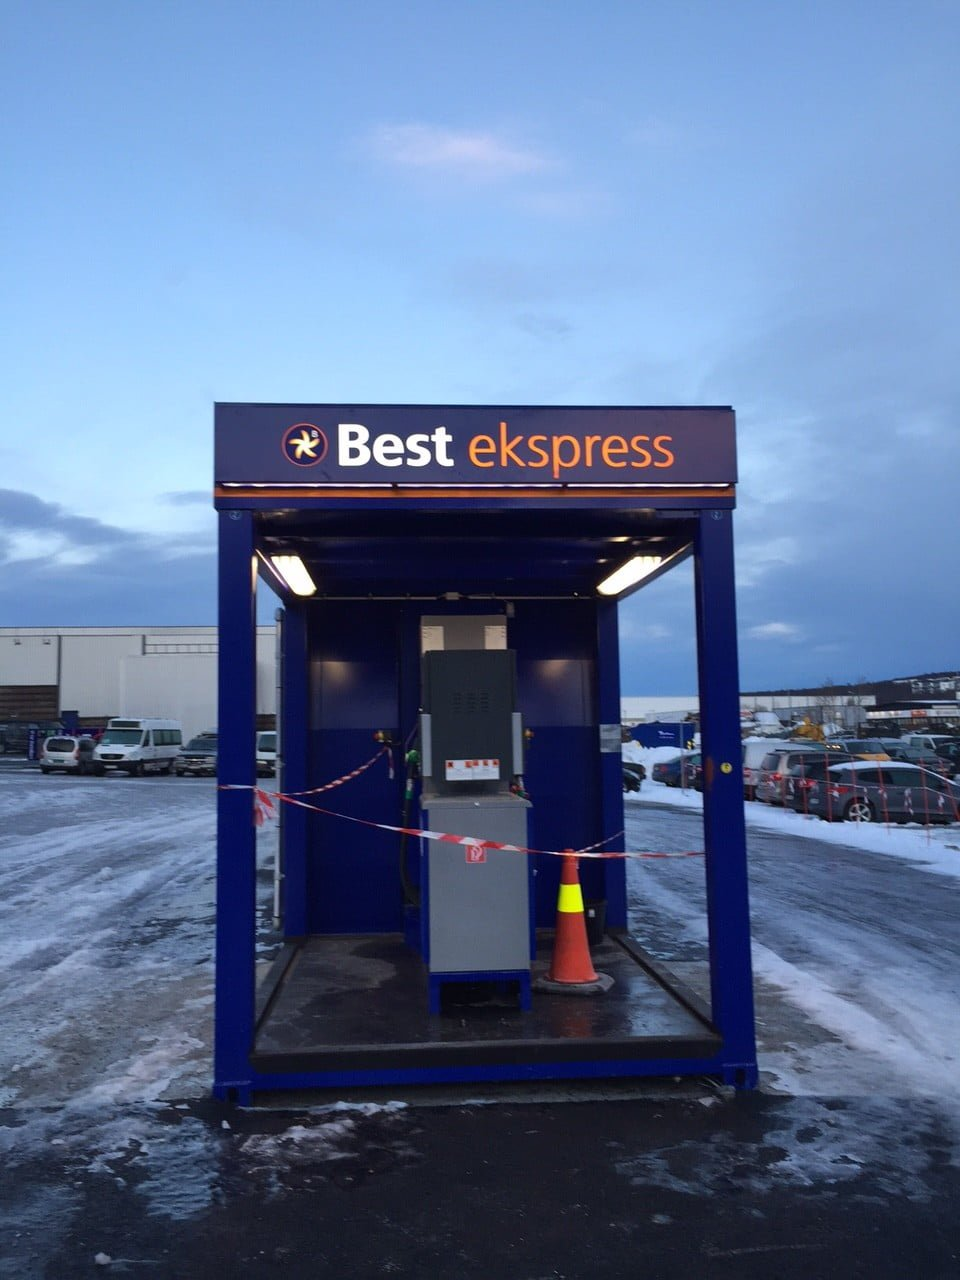 Krampitz gas station container in Tromso city (2)